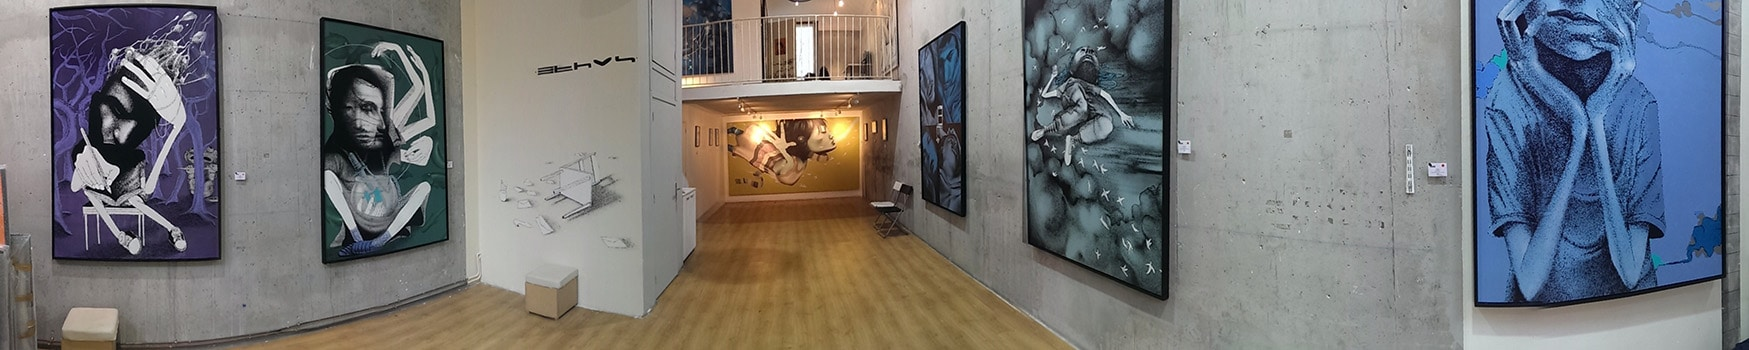 Galerie Itinerrance